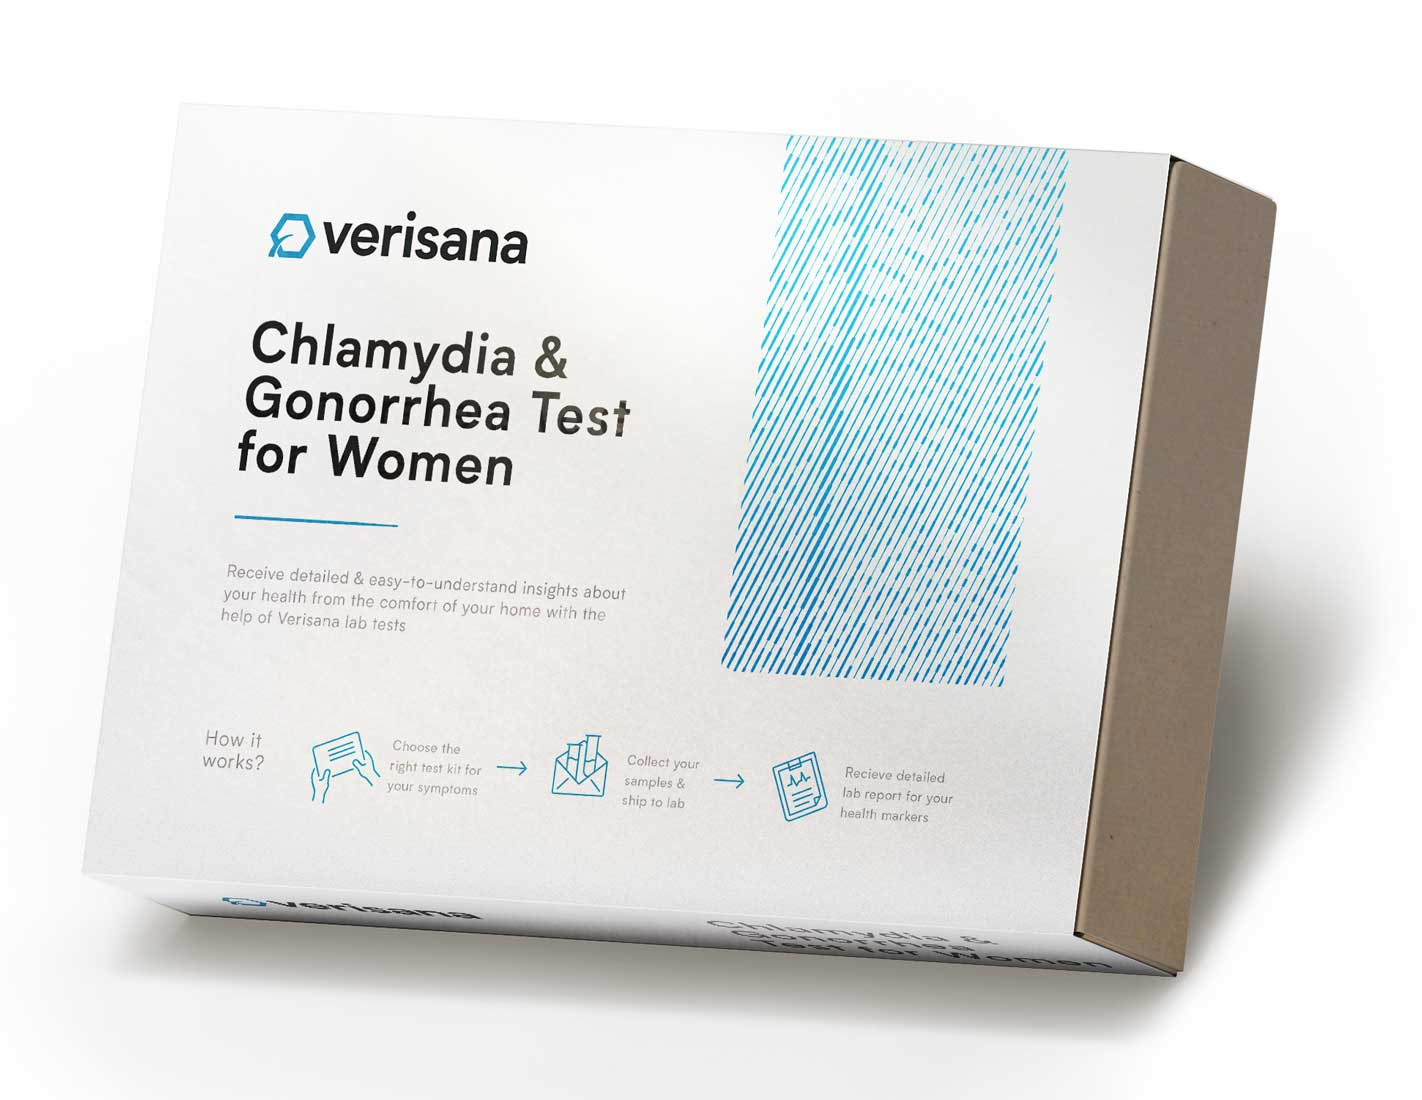 Chlamydia-and-Gonorrhea-Test-for-Women-Testkit